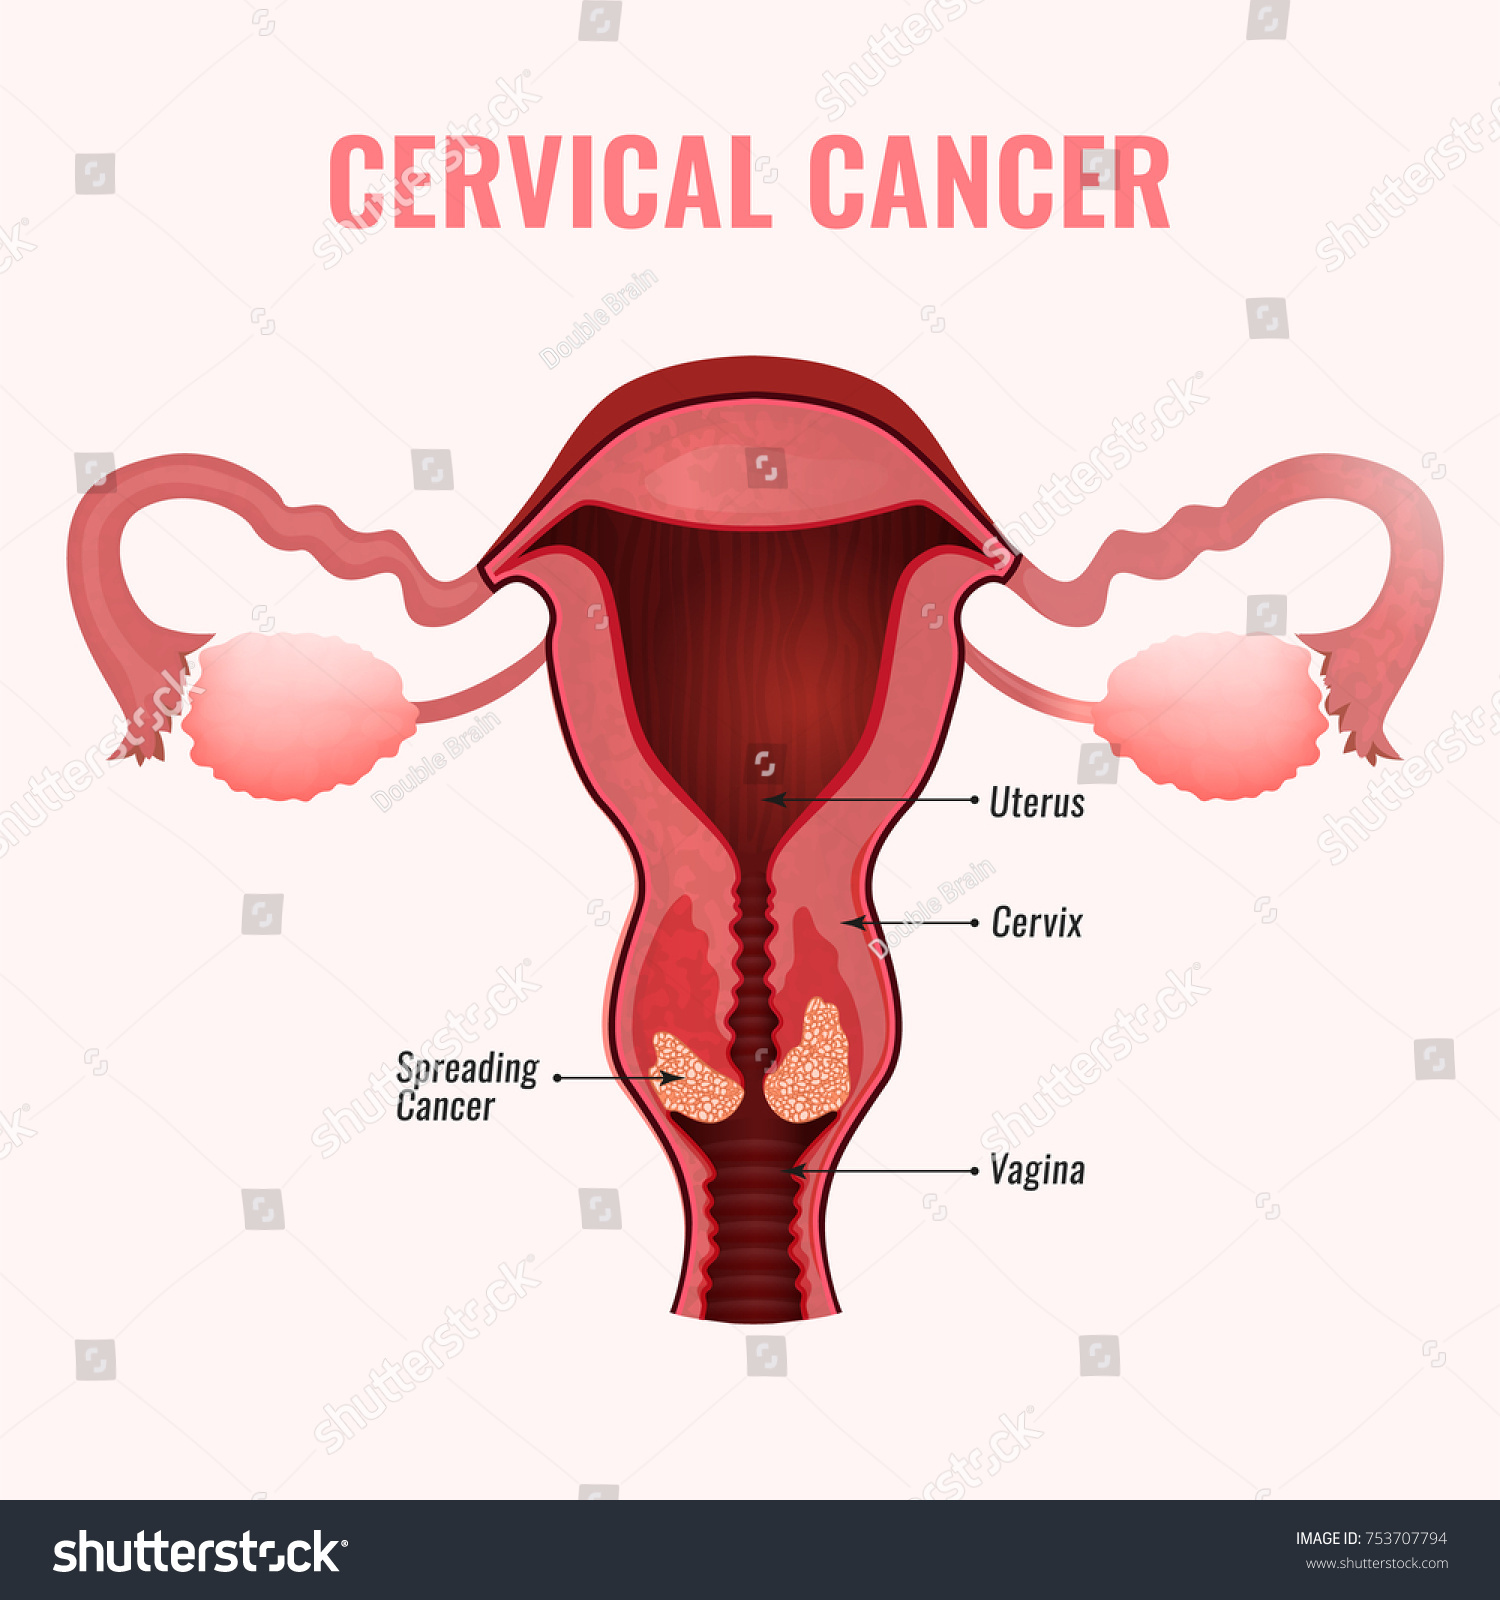 Cervical Cancer Development Image Detailed Vector Stock Vector ...